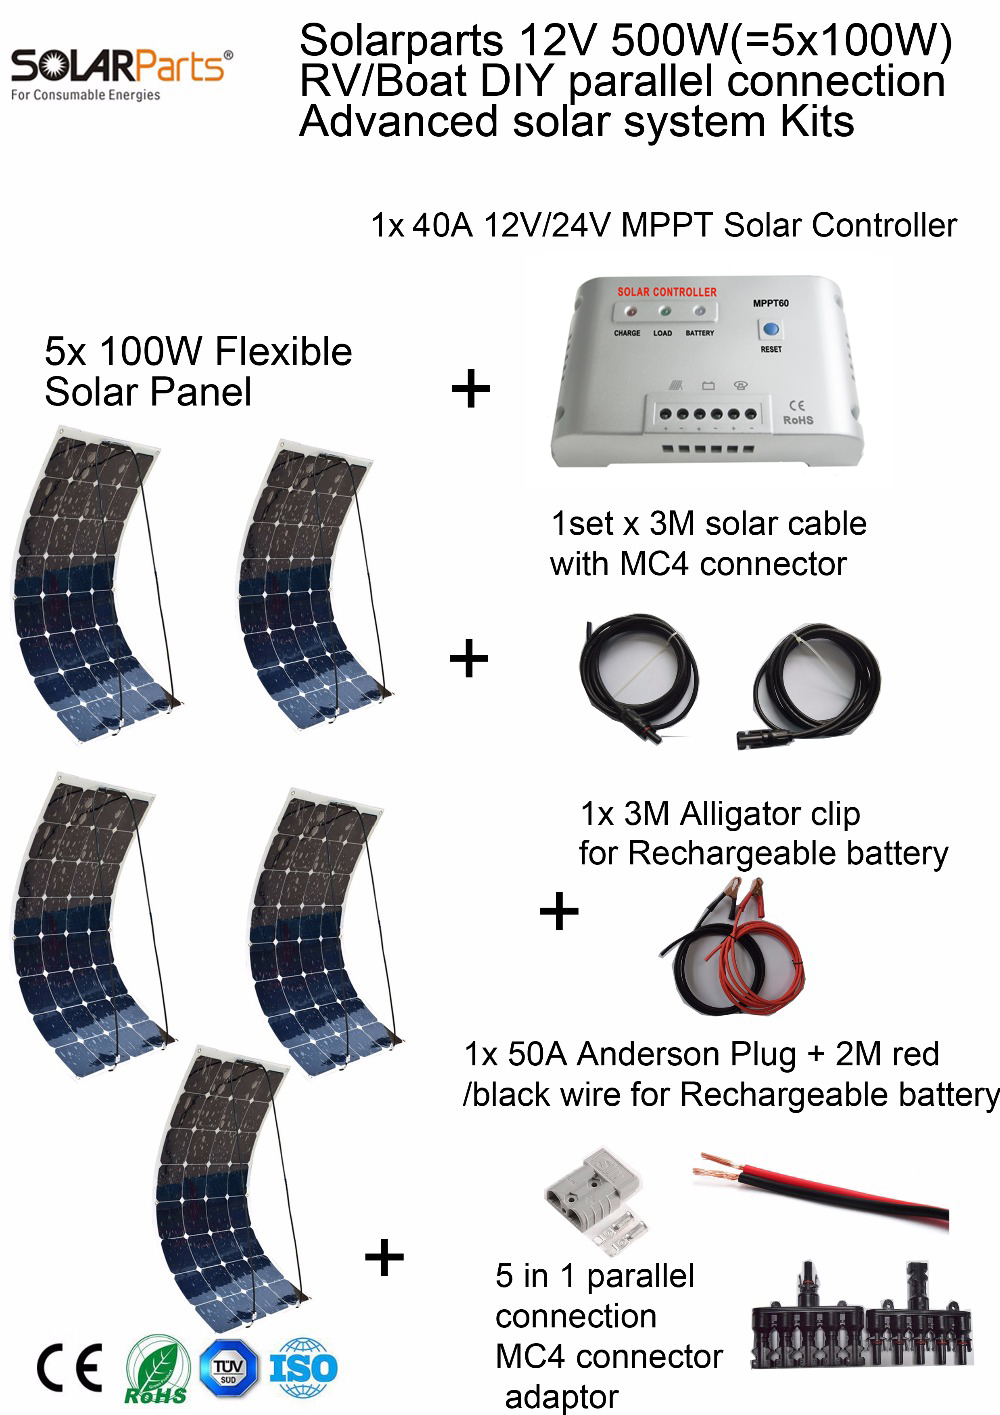 Solarparts 500W DIY RV/Marine Kits Solar System 5x100W flexible solar panel 12V, 1 x 40A MPPT solar controller set cables cheap solarparts 2x 180w flexible solar panel cell system diy kits 12v for rv boat home front junction box mc4 connector 125 125mm sun